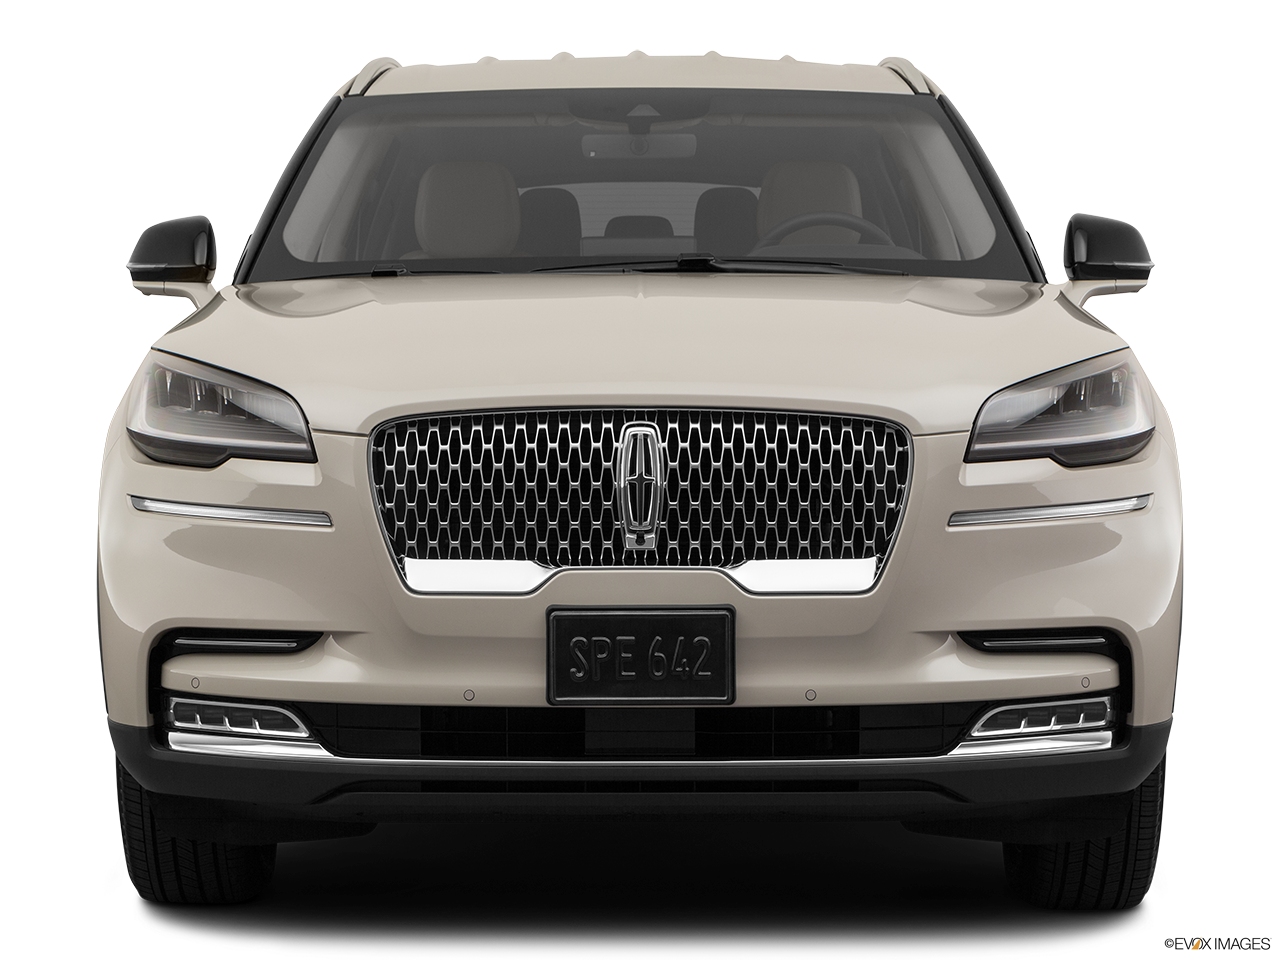 Front view of the Lincoln Aviator Grand Touring